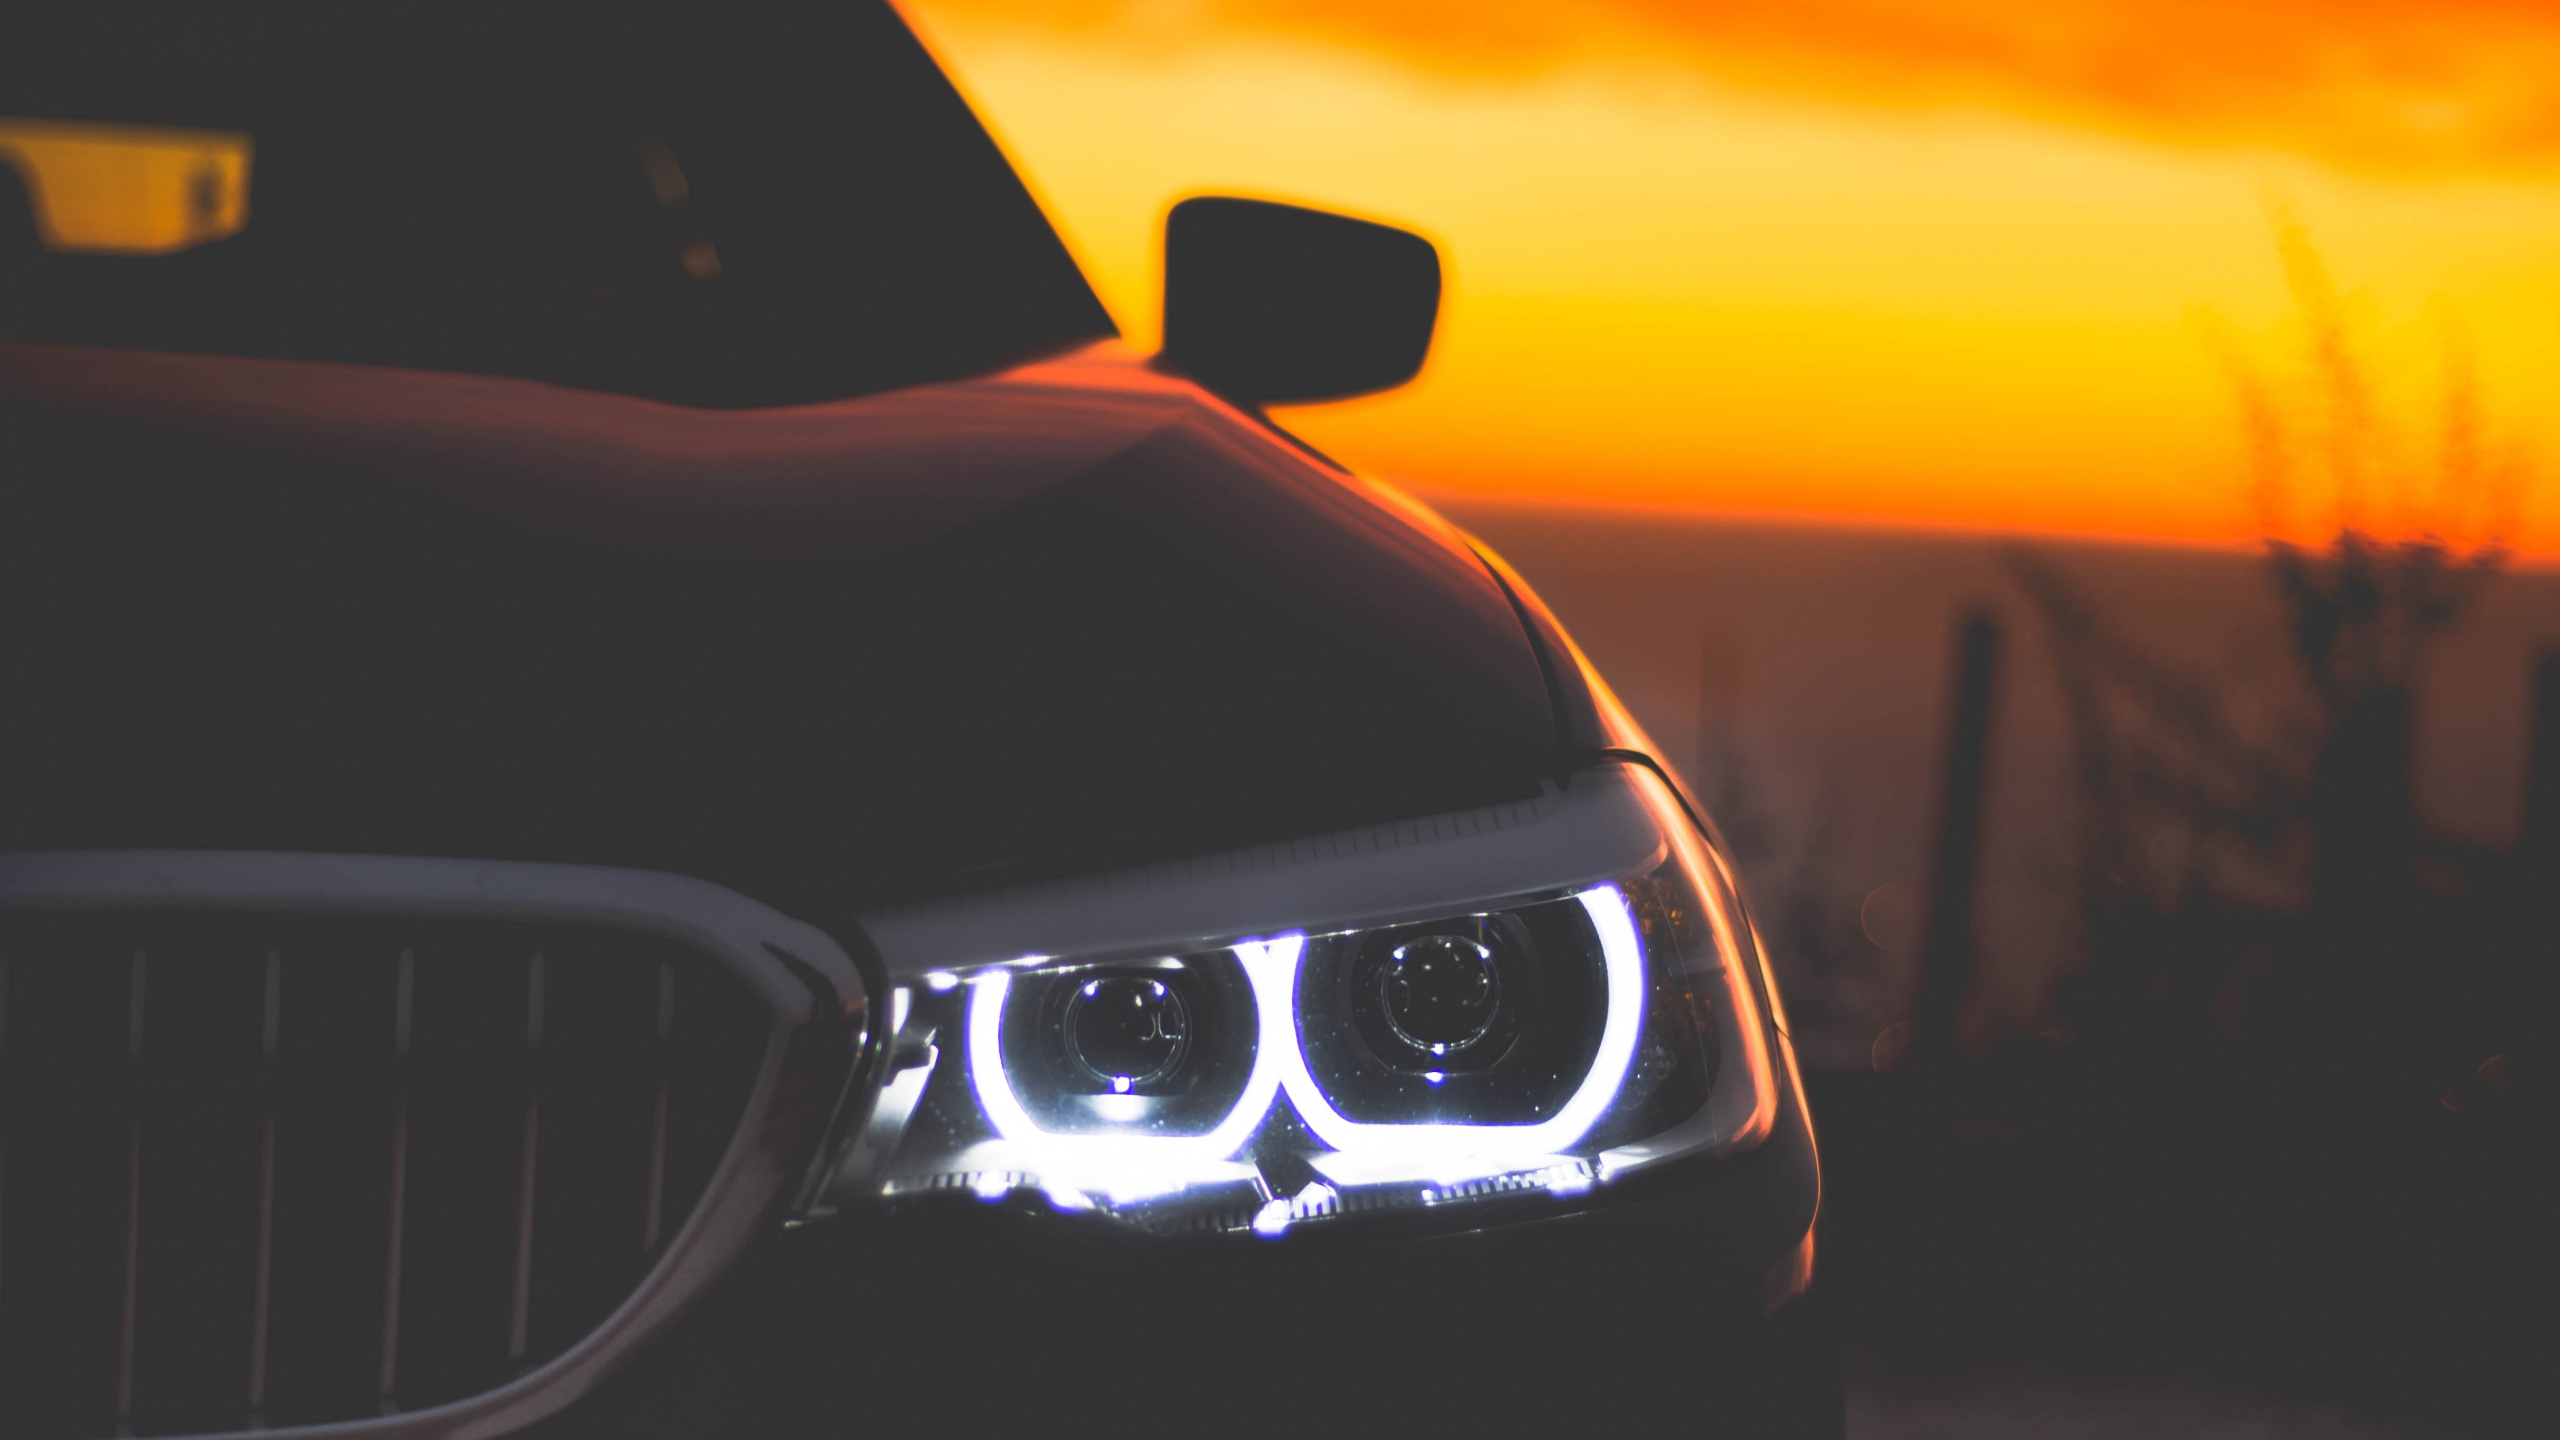 3d Wallpaper Love You Wallpaper Of Auto Farah Night Bmw Background Amp Hd Image